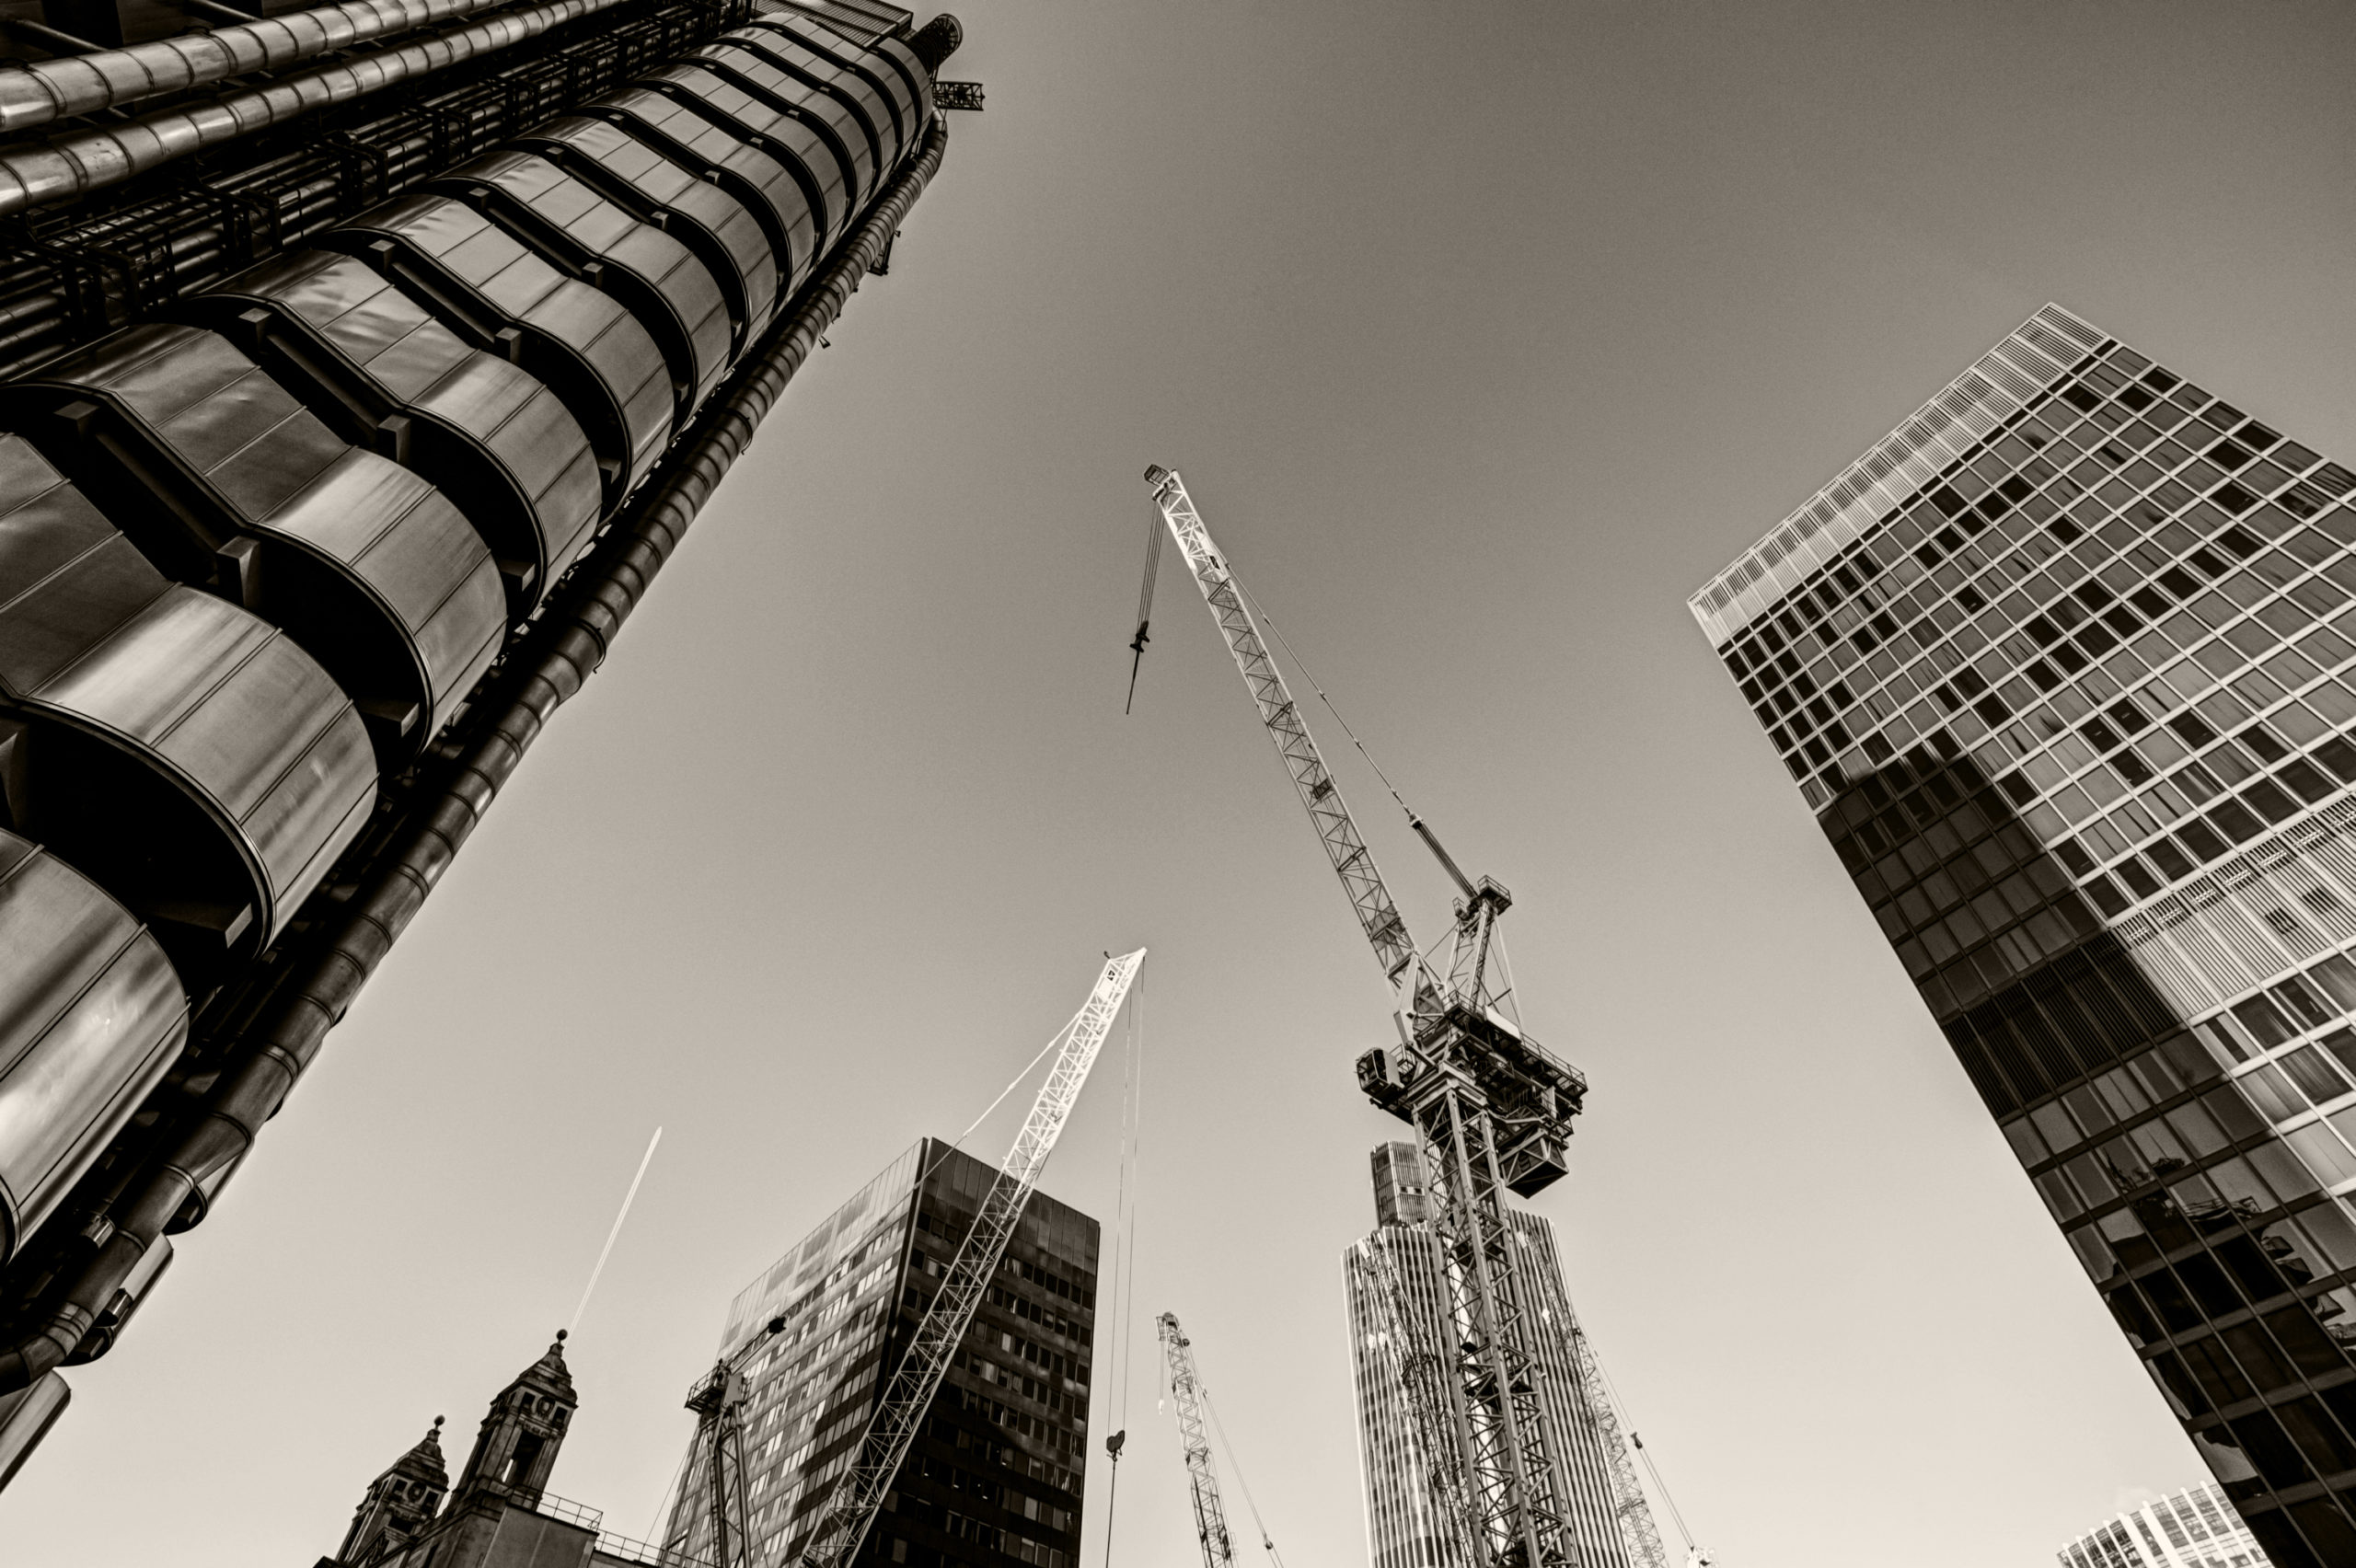 Upward angle looking at tall buildings and cranes